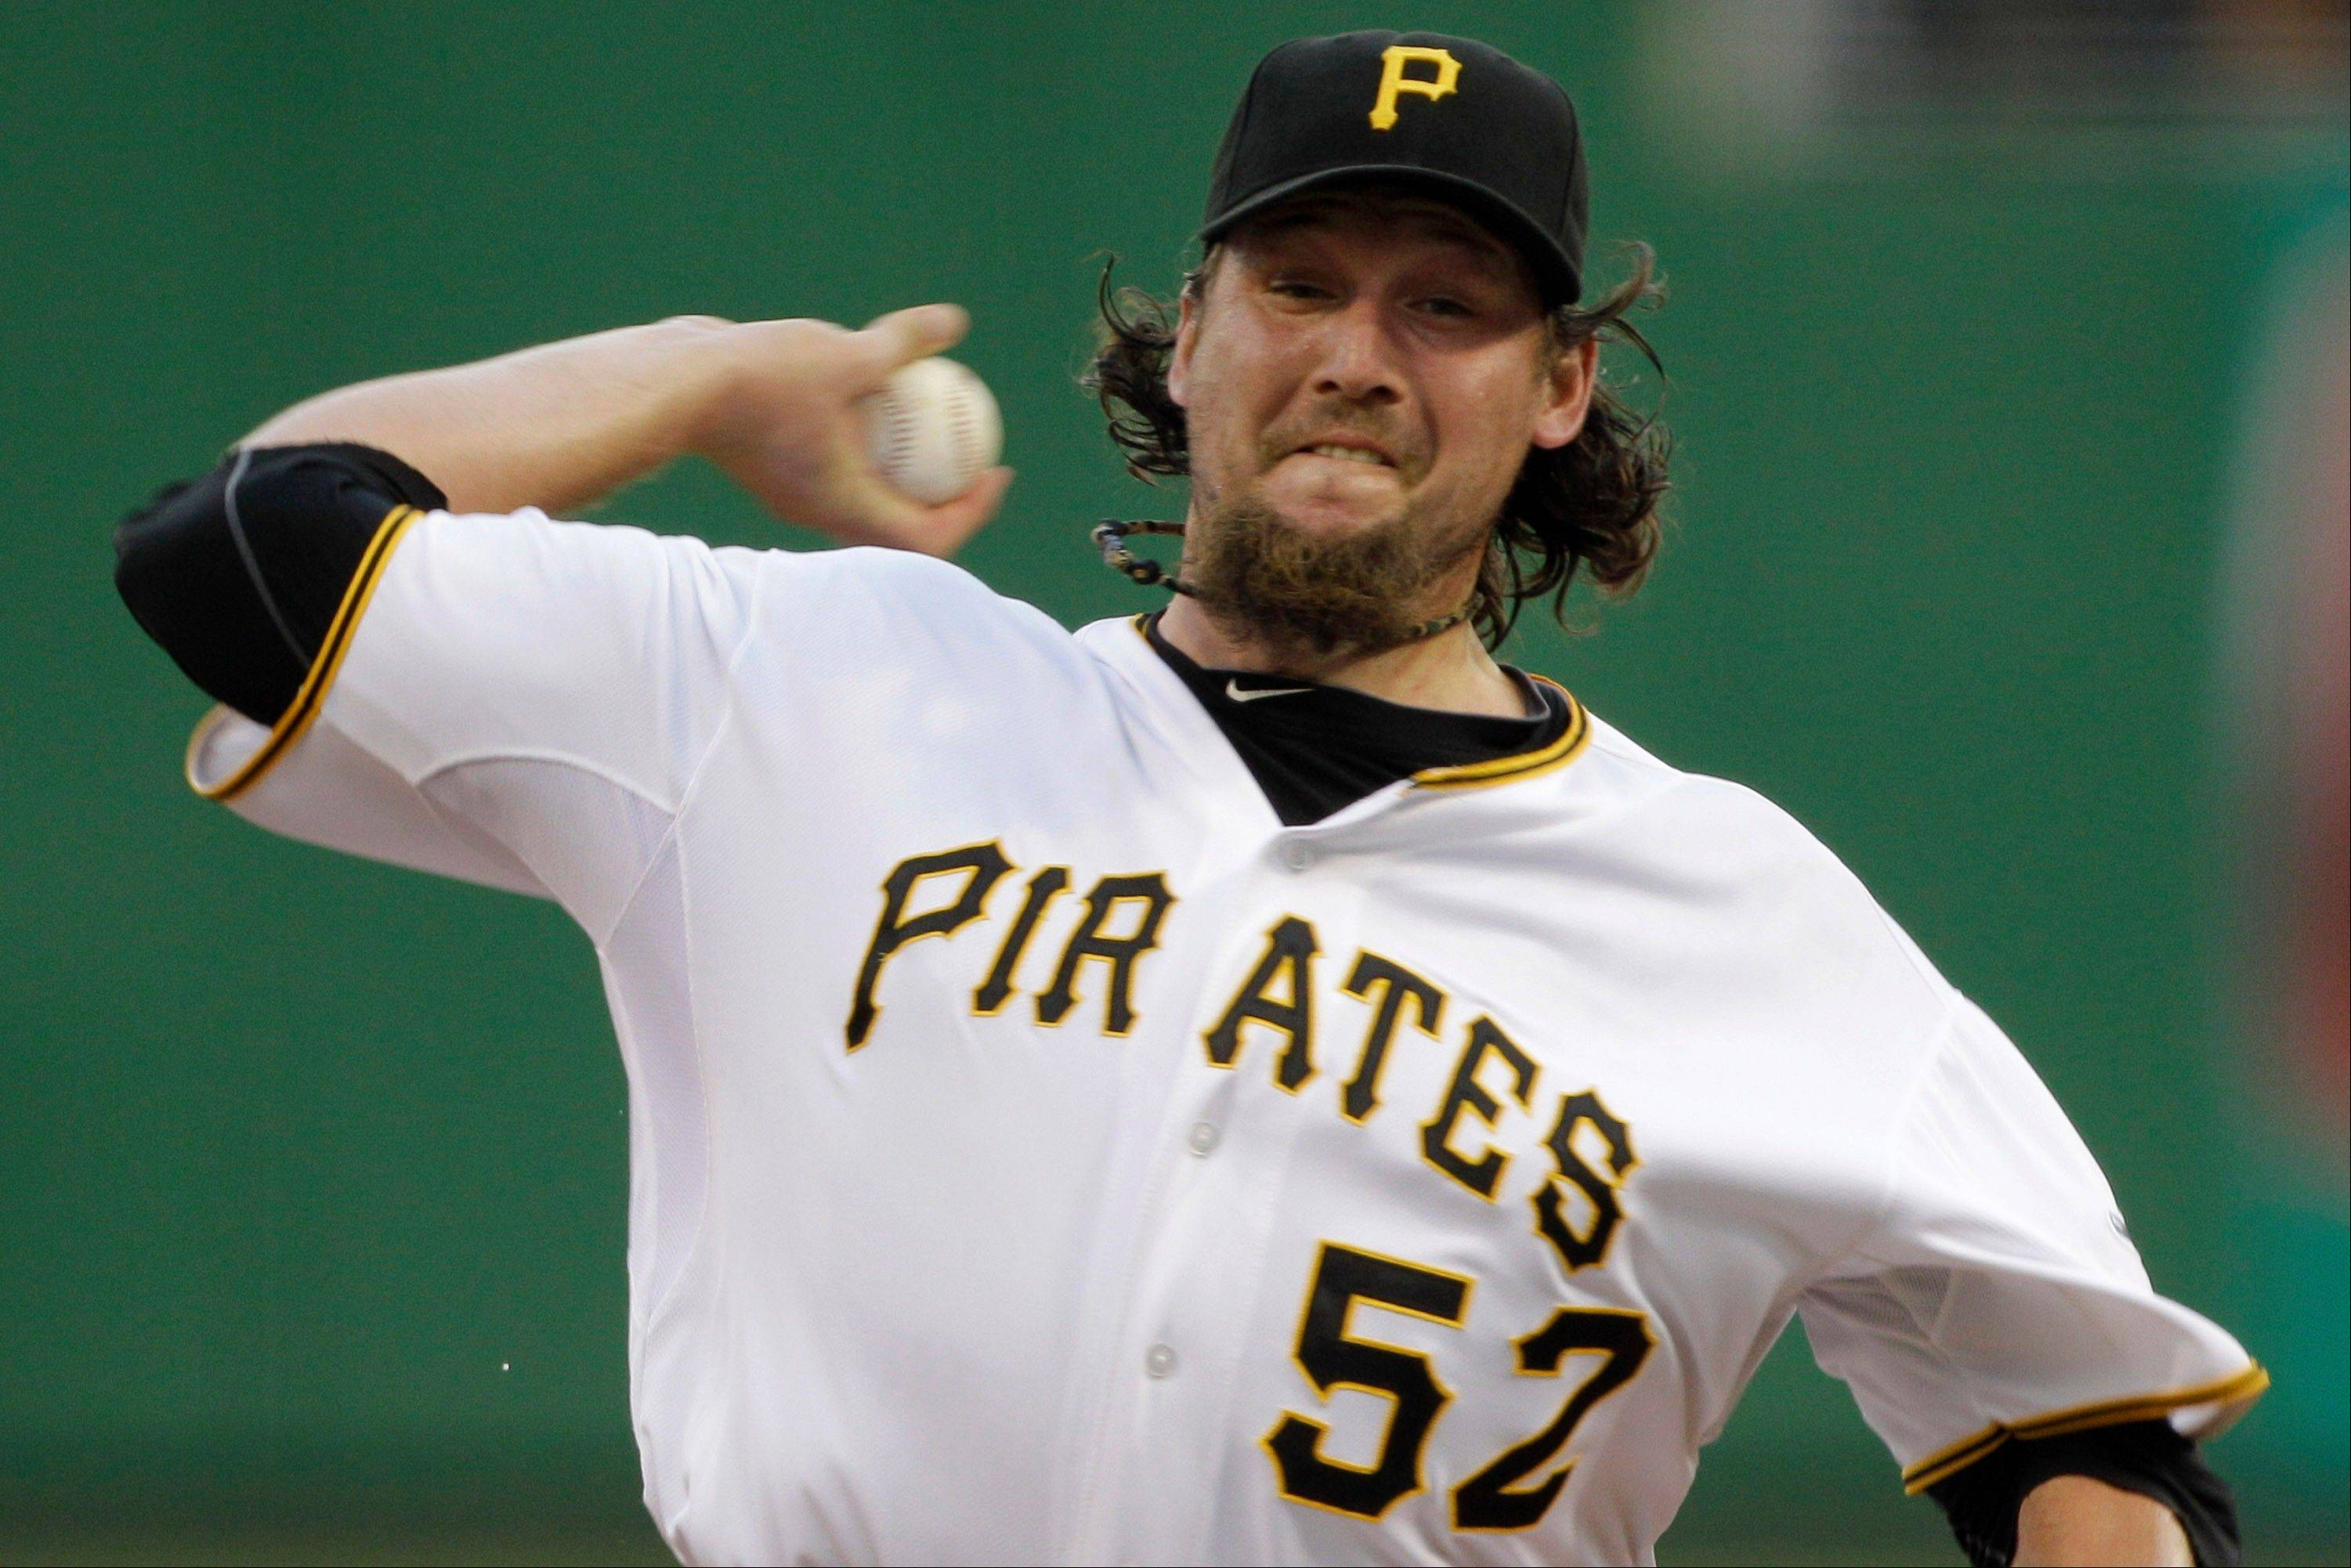 Pittsburgh Pirates closer Joel Hanrahan was traded to Boston in a six-player deal that was announced Wednesday.